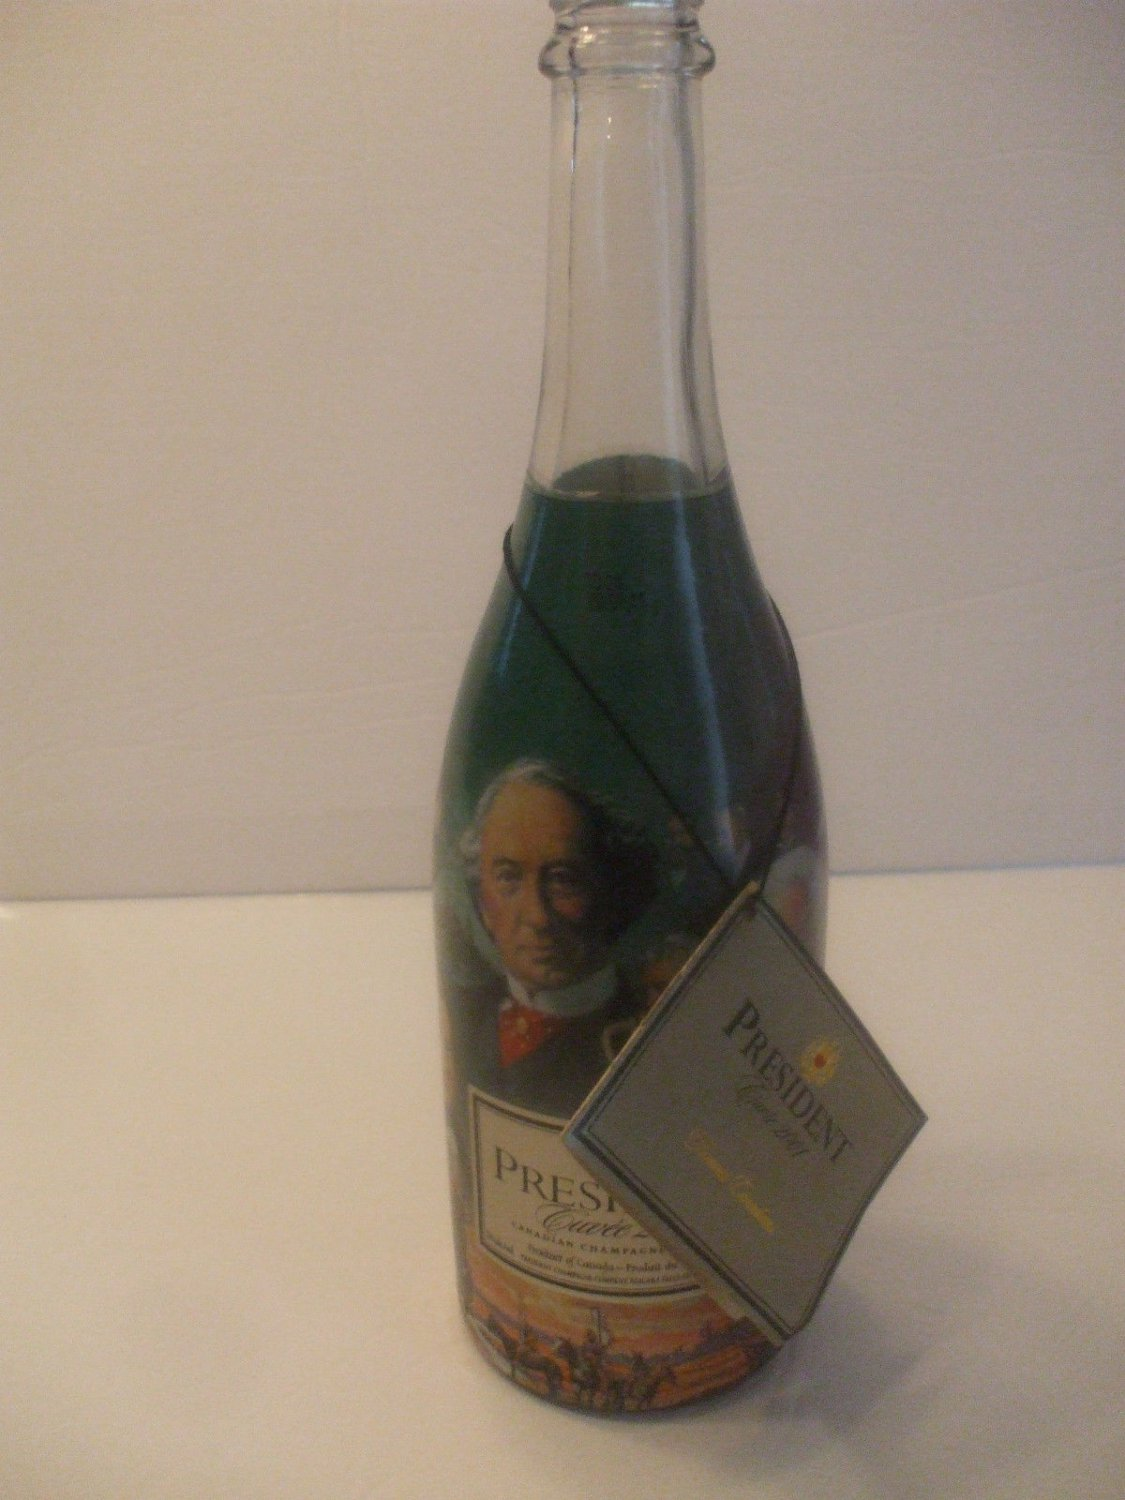 EMPTY Collectable President Cuvee Famous Canadians Champagne Bottle  2001